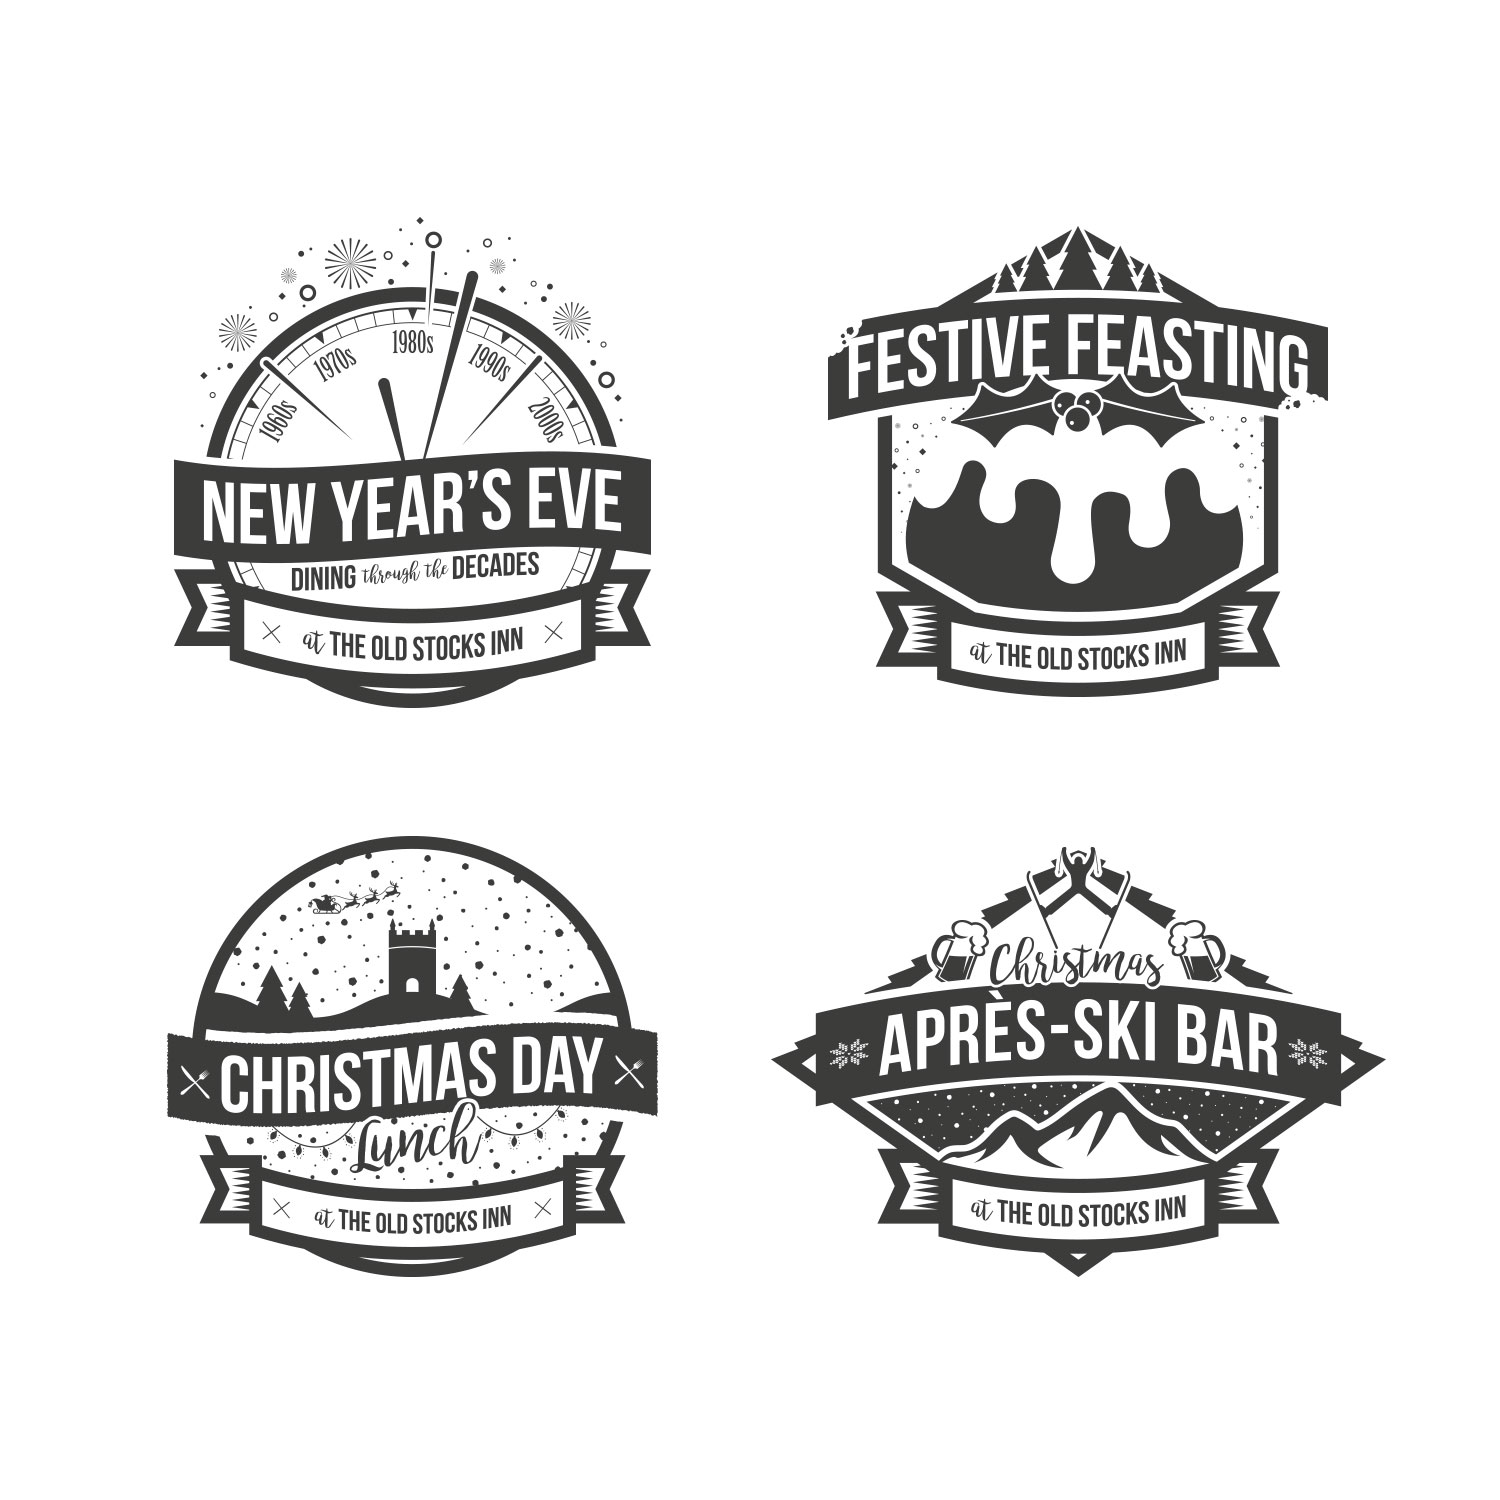 Christmas event icons designed for The Old Stocks Inn by Mighty, hotel marketing agency